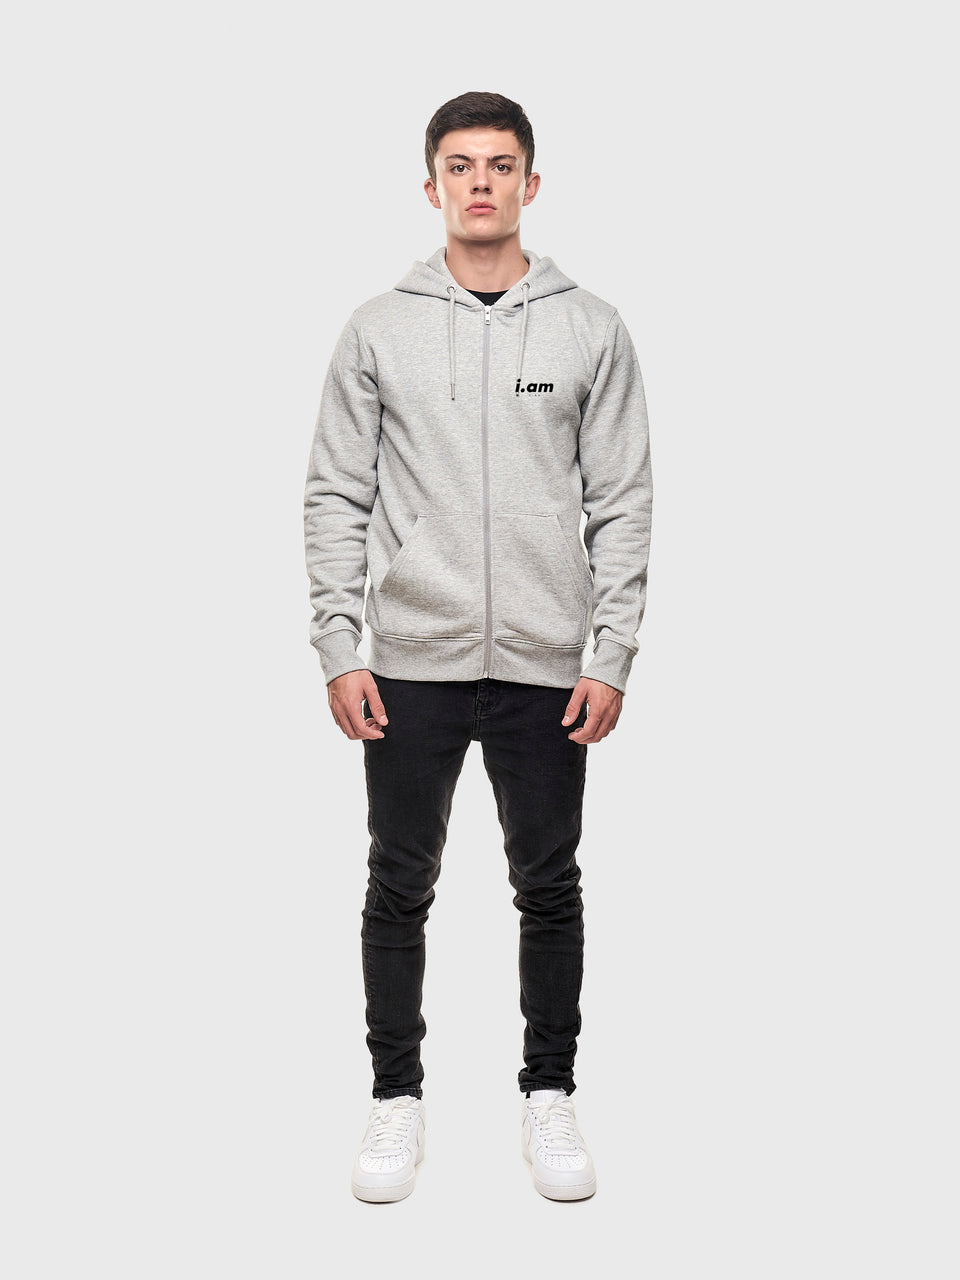 The connect - Grey - Unisex zip up hoodie